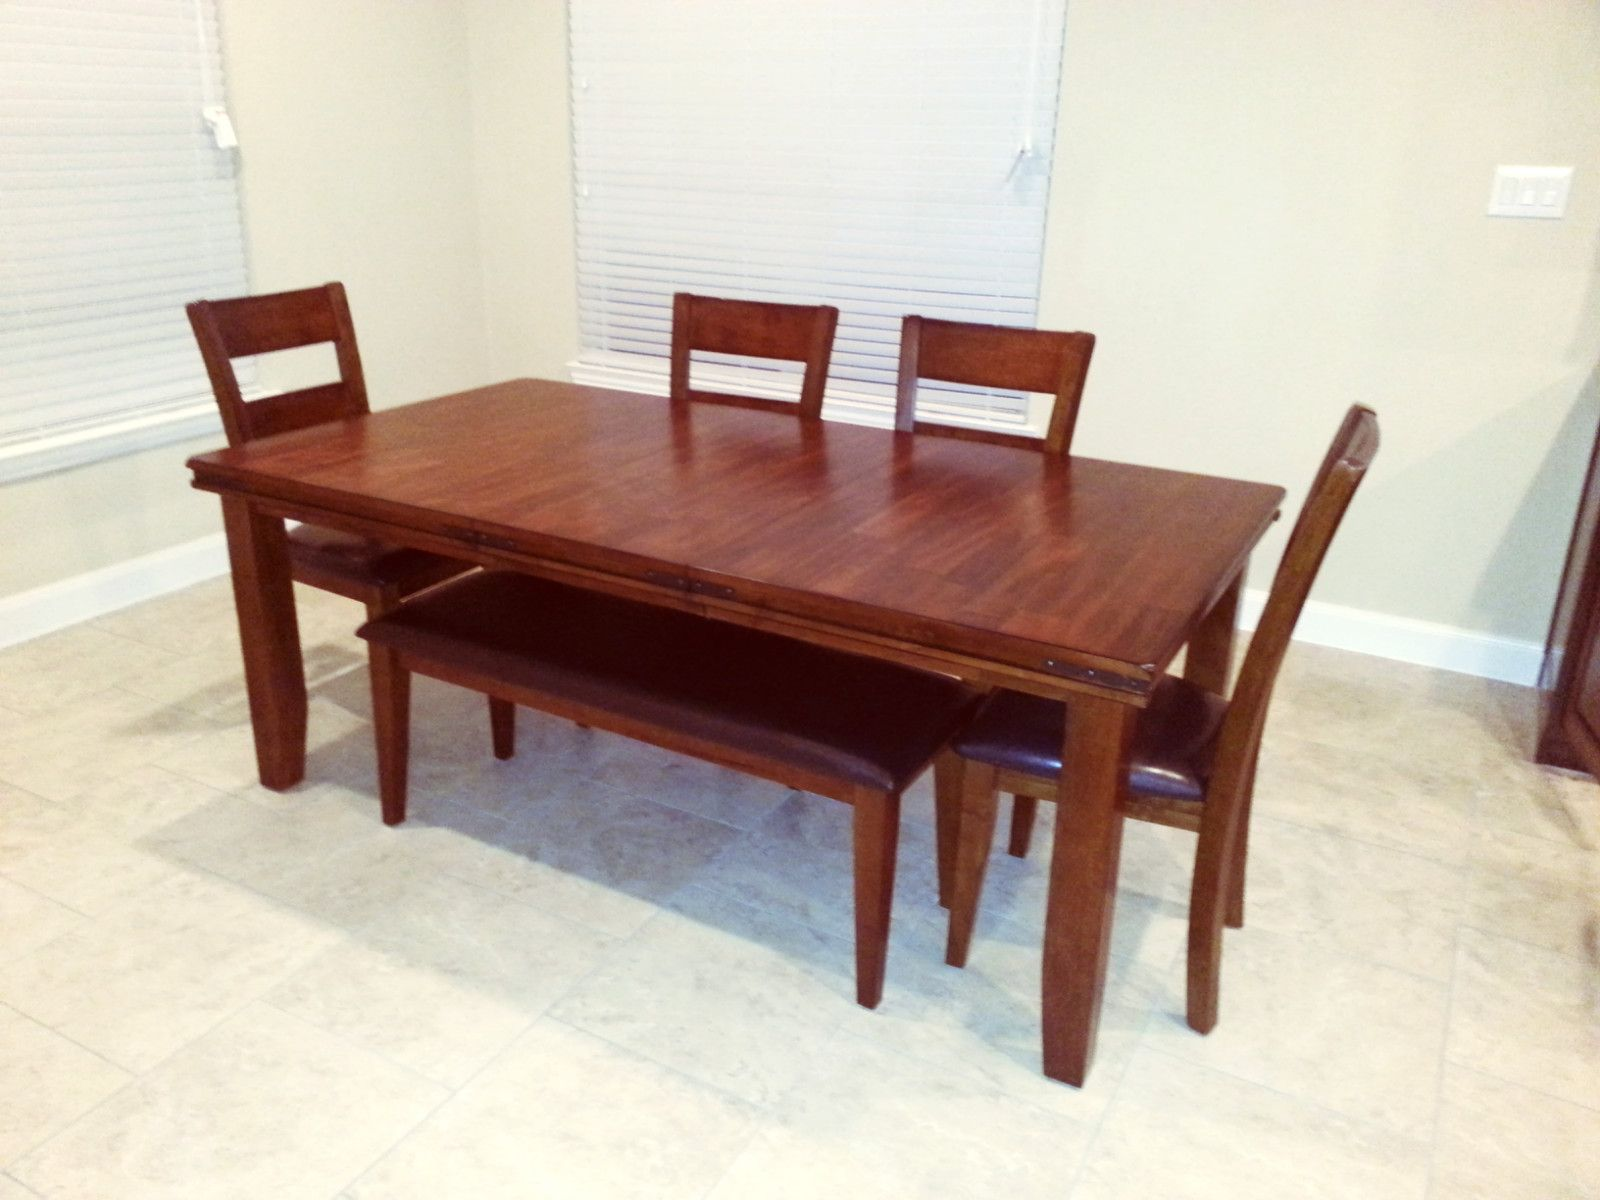 American made quality furniture at value prices